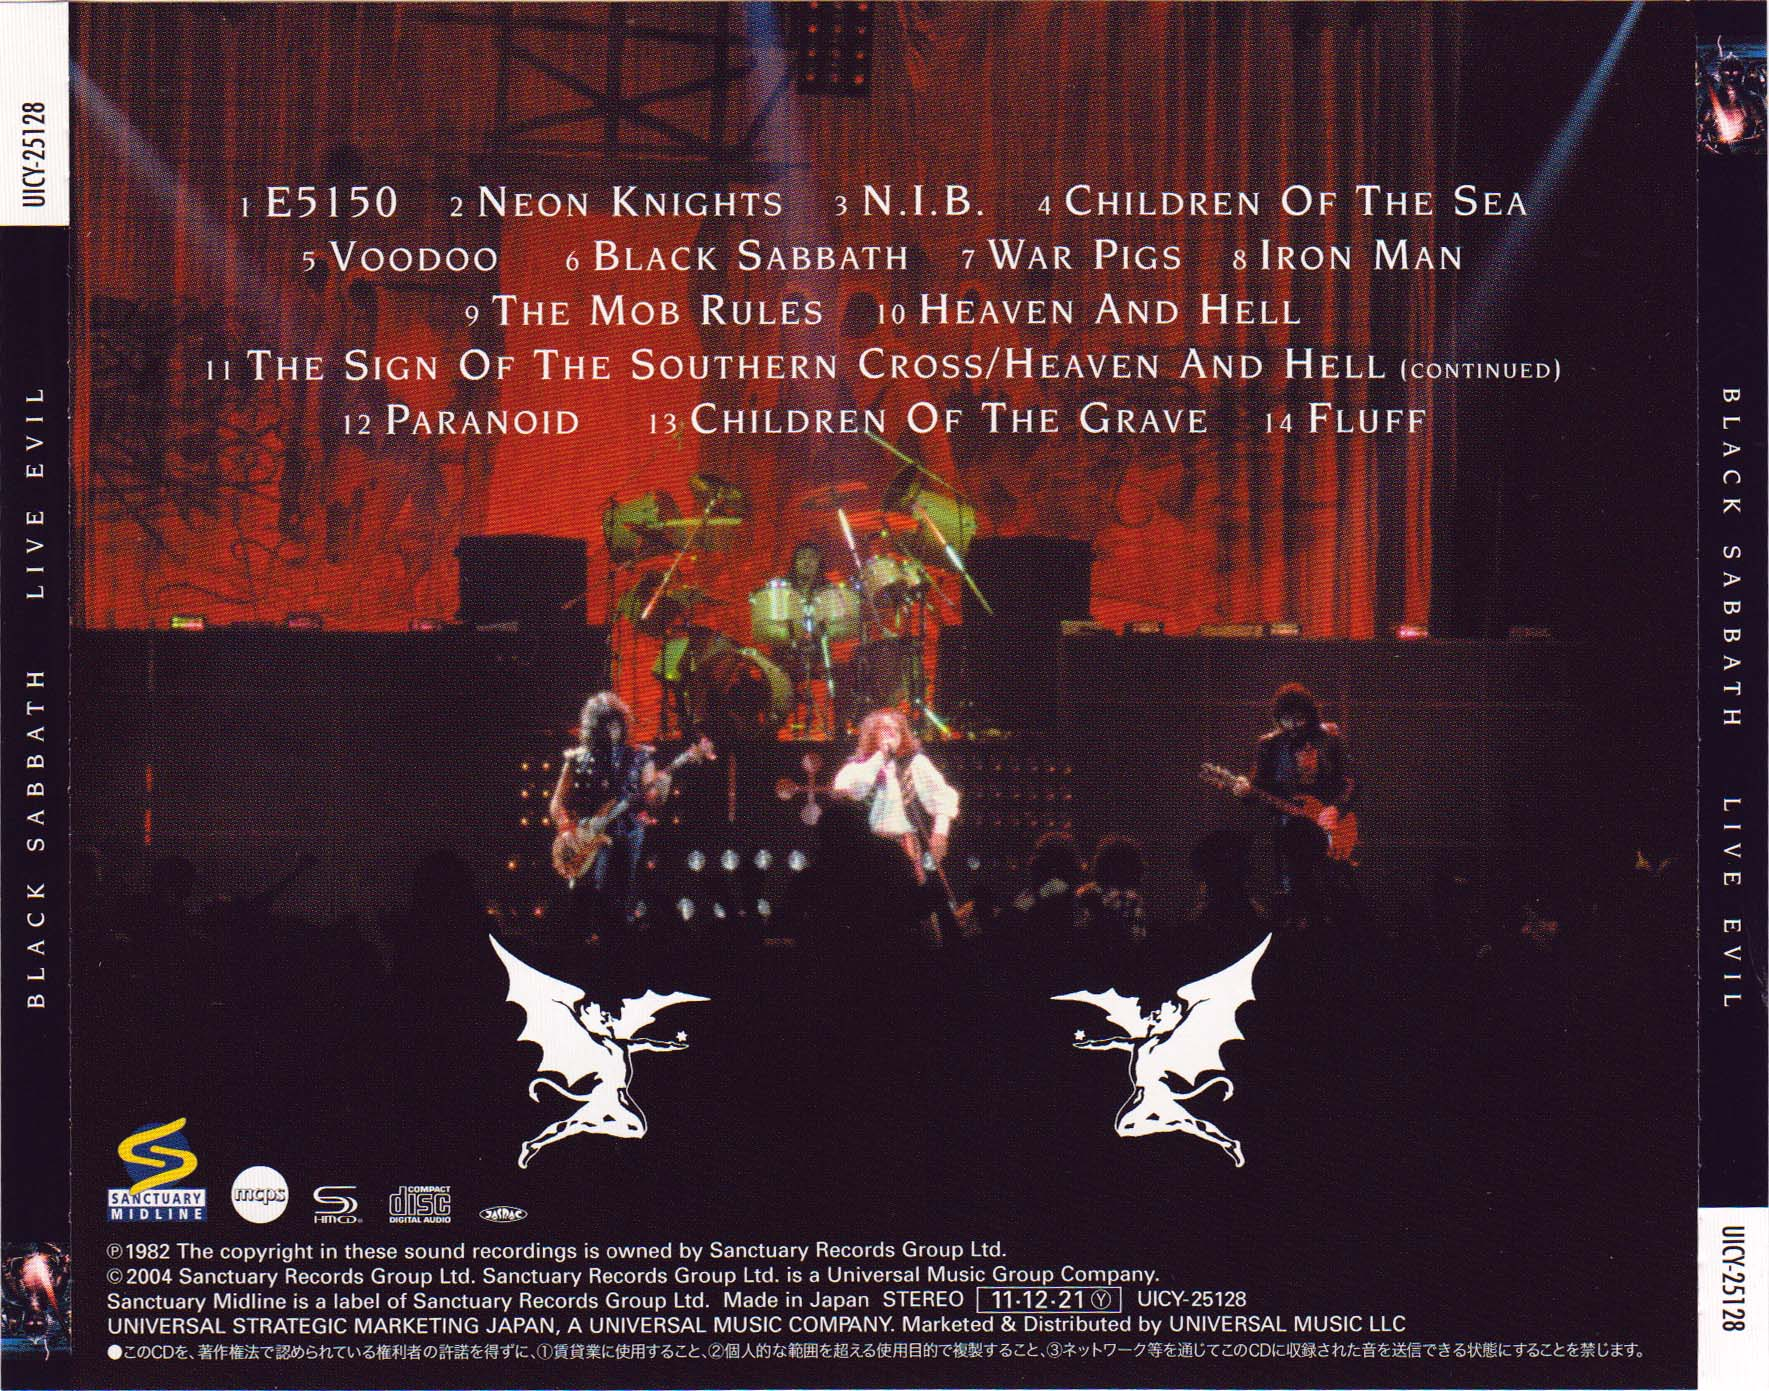 Black sabbath live evil video dvd download : Free download